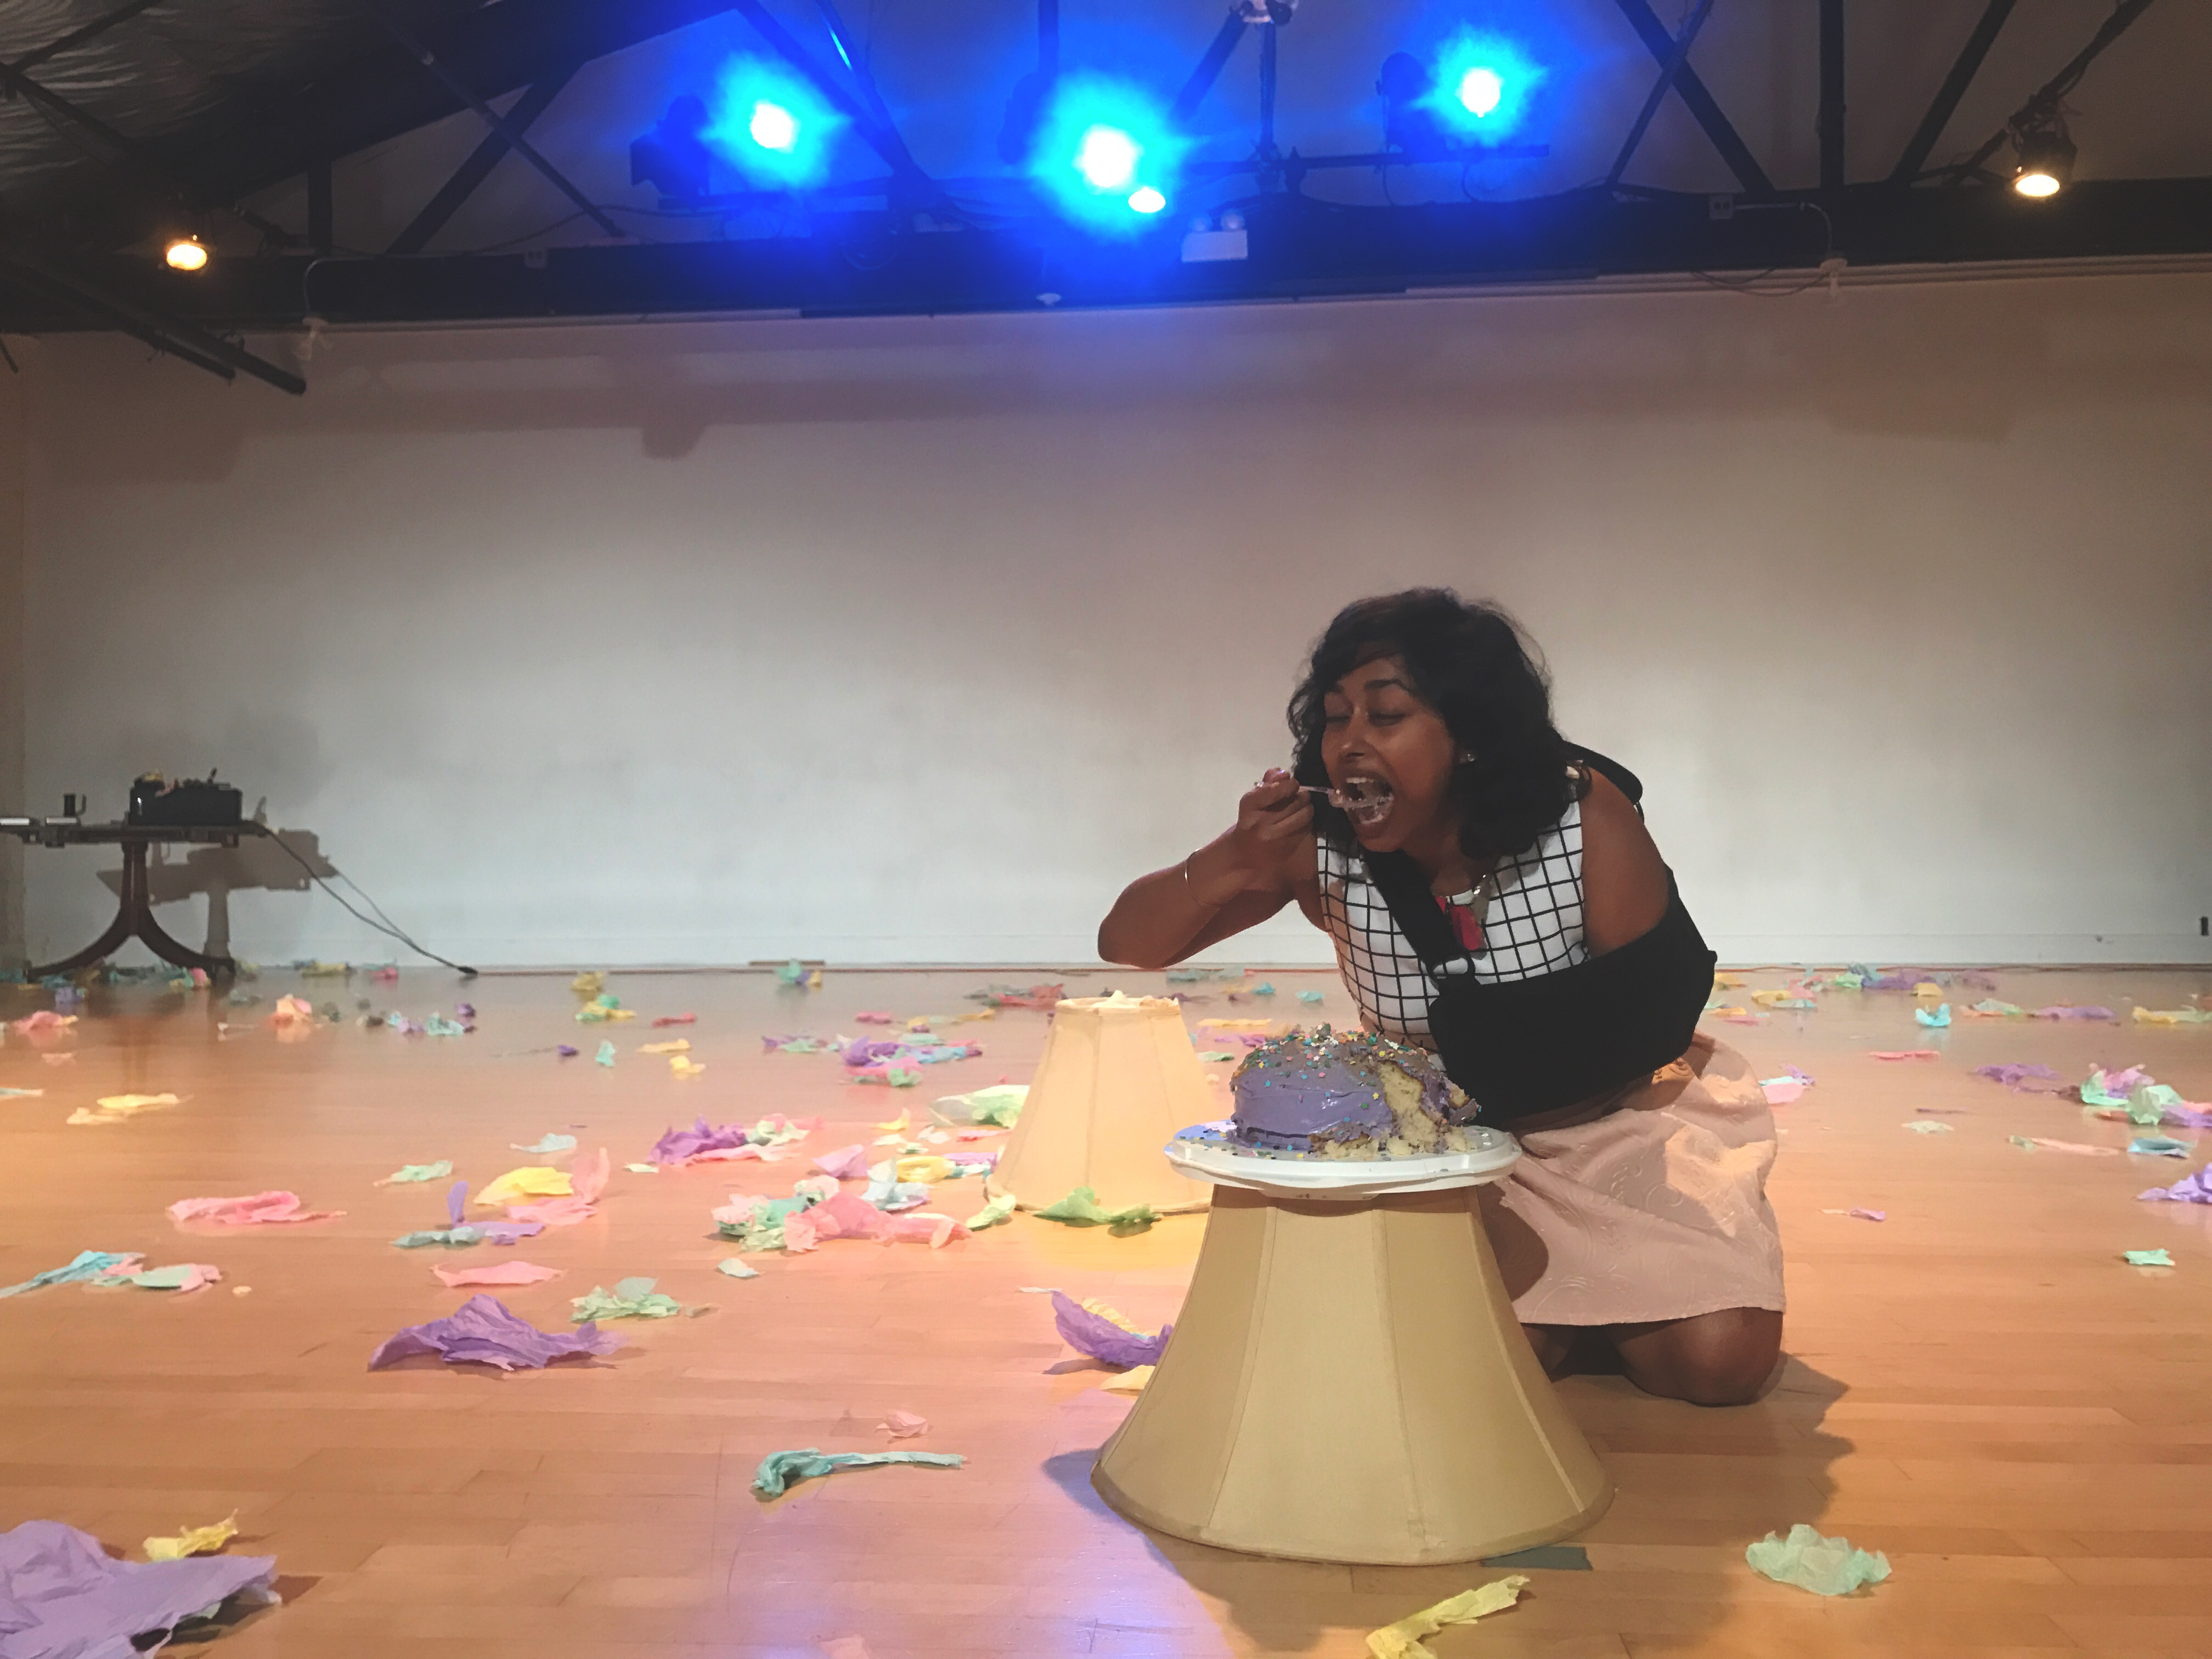 The image is a low, long shot of a performance space, with bright lights at the top of the frame shining toward the camera. In the foreground, Udita kneels on the floor, eating a bite of colorfully frosted cake off a plate that rests on a lampshade, also on the floor. Around and behind her in the room are shredded pieces of paper in pastel colors.